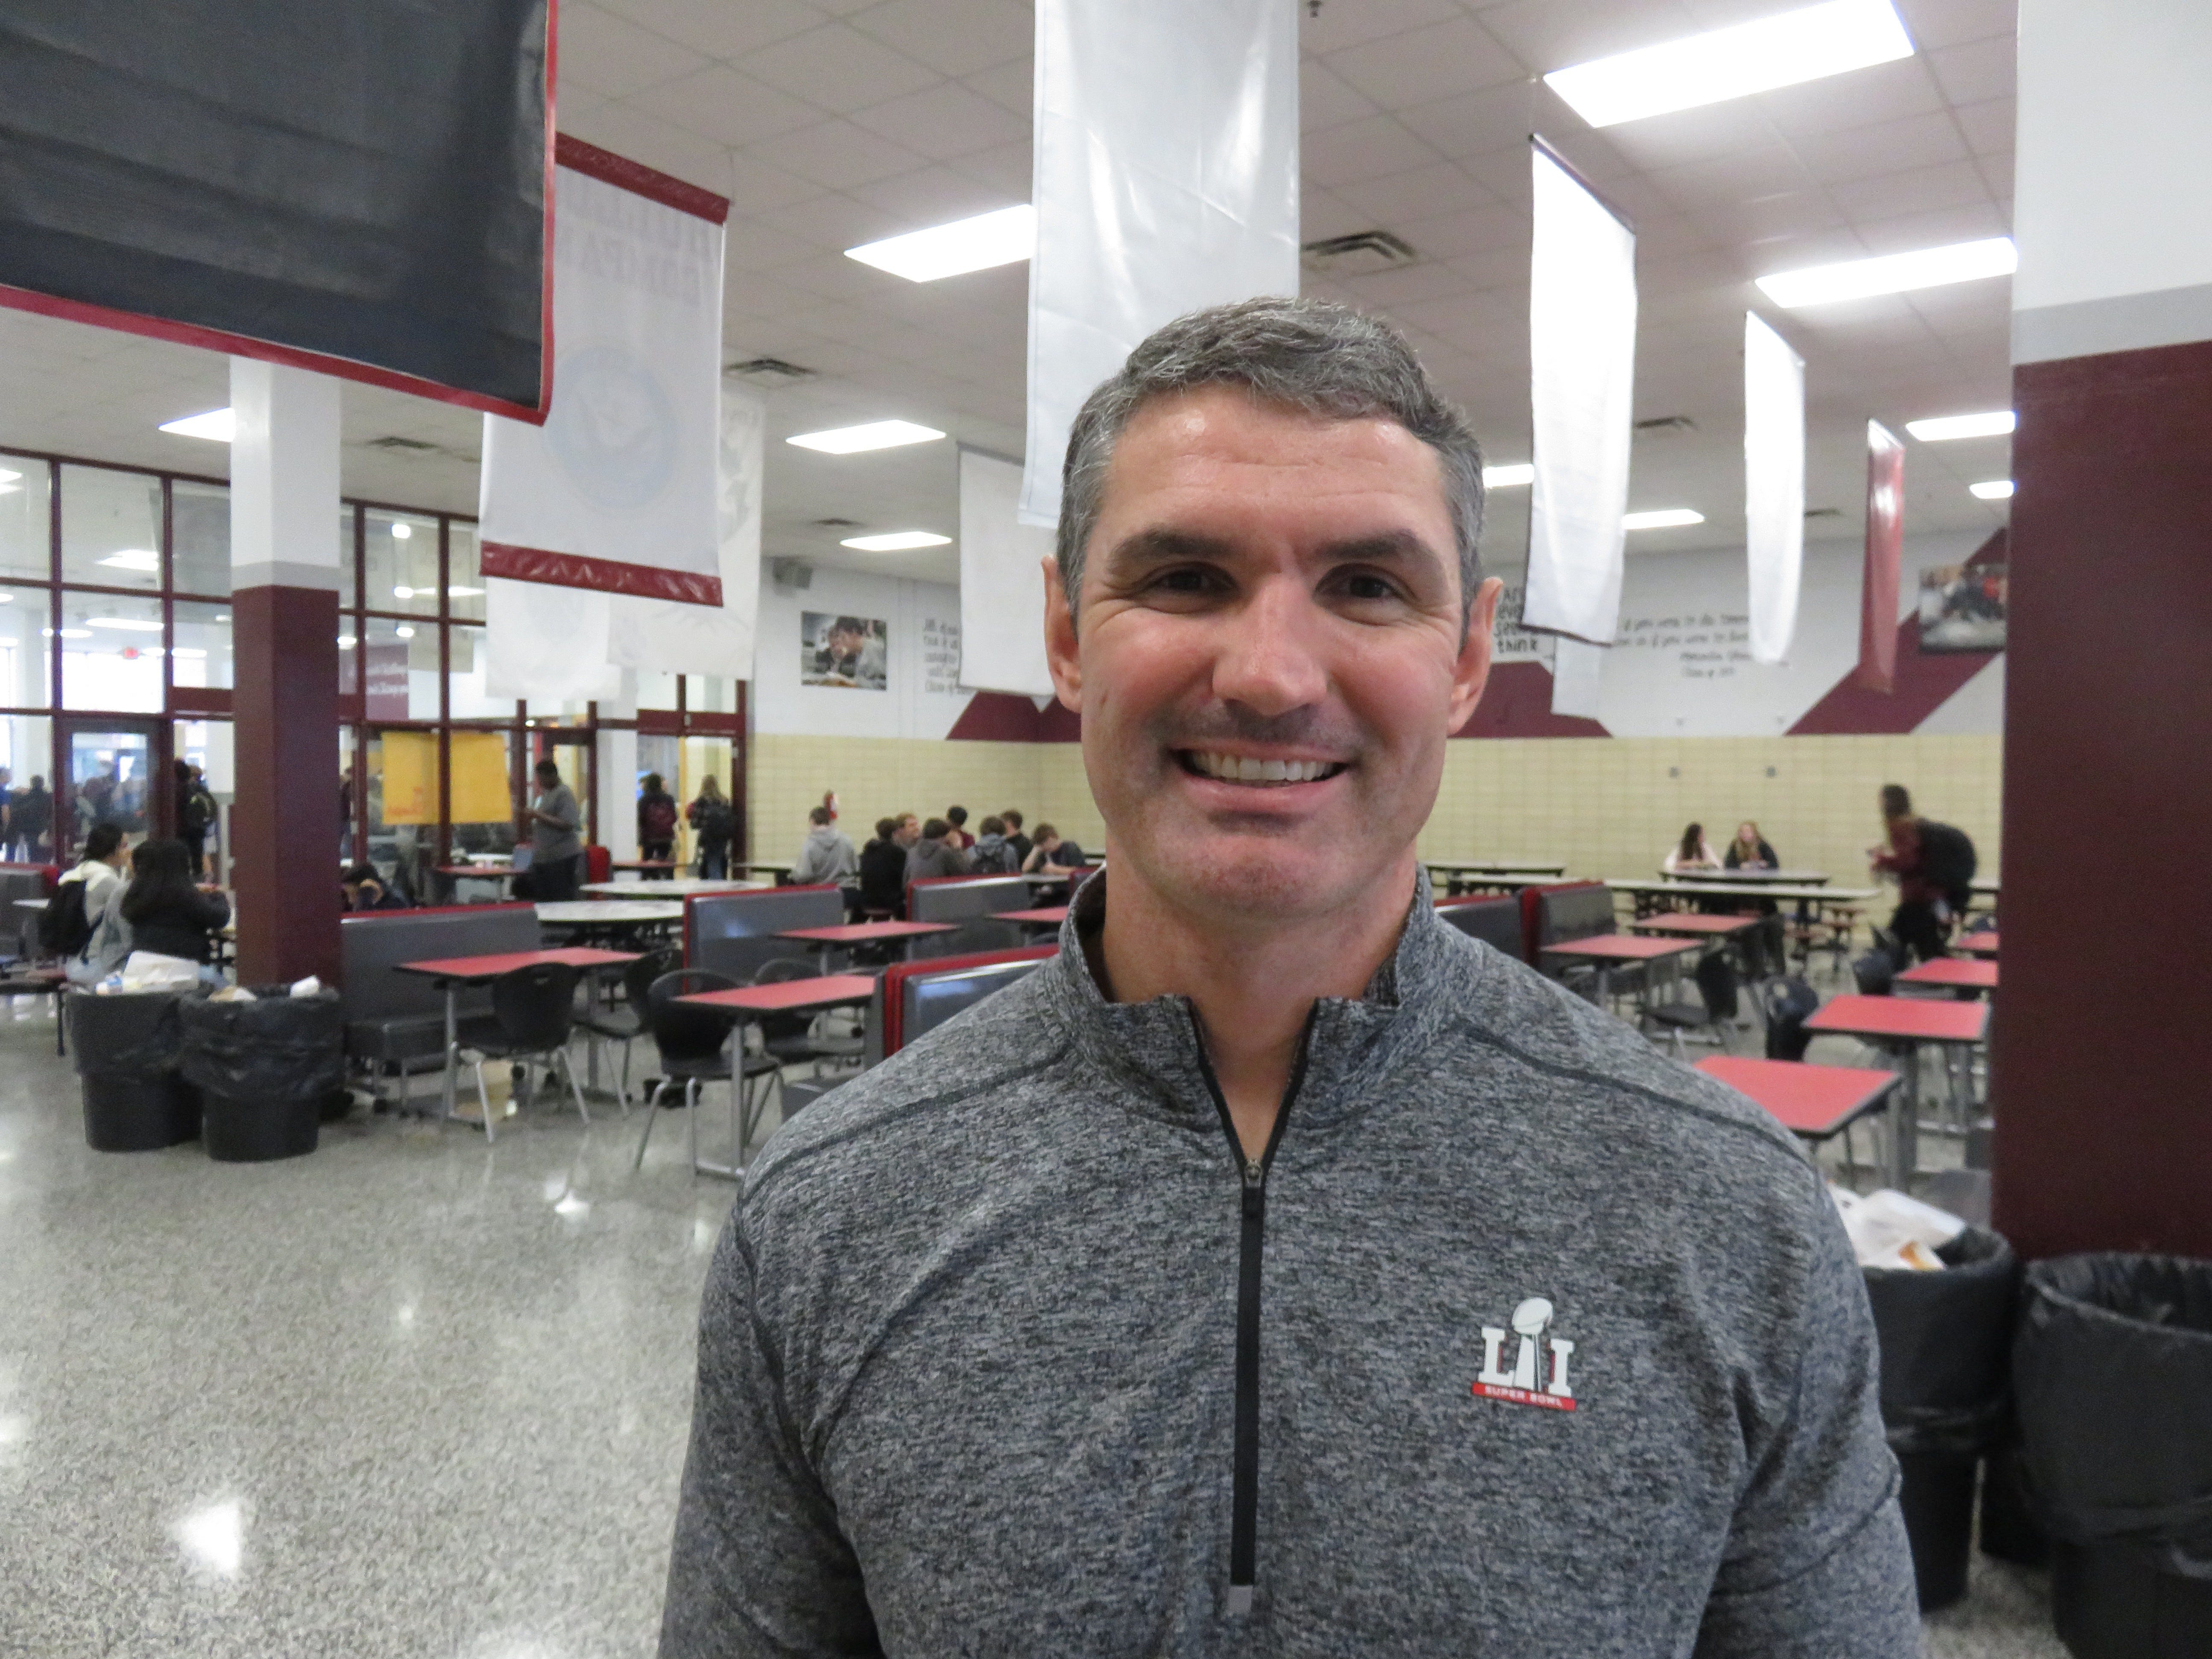 Bearden High School football coach Morgan Shinlever.